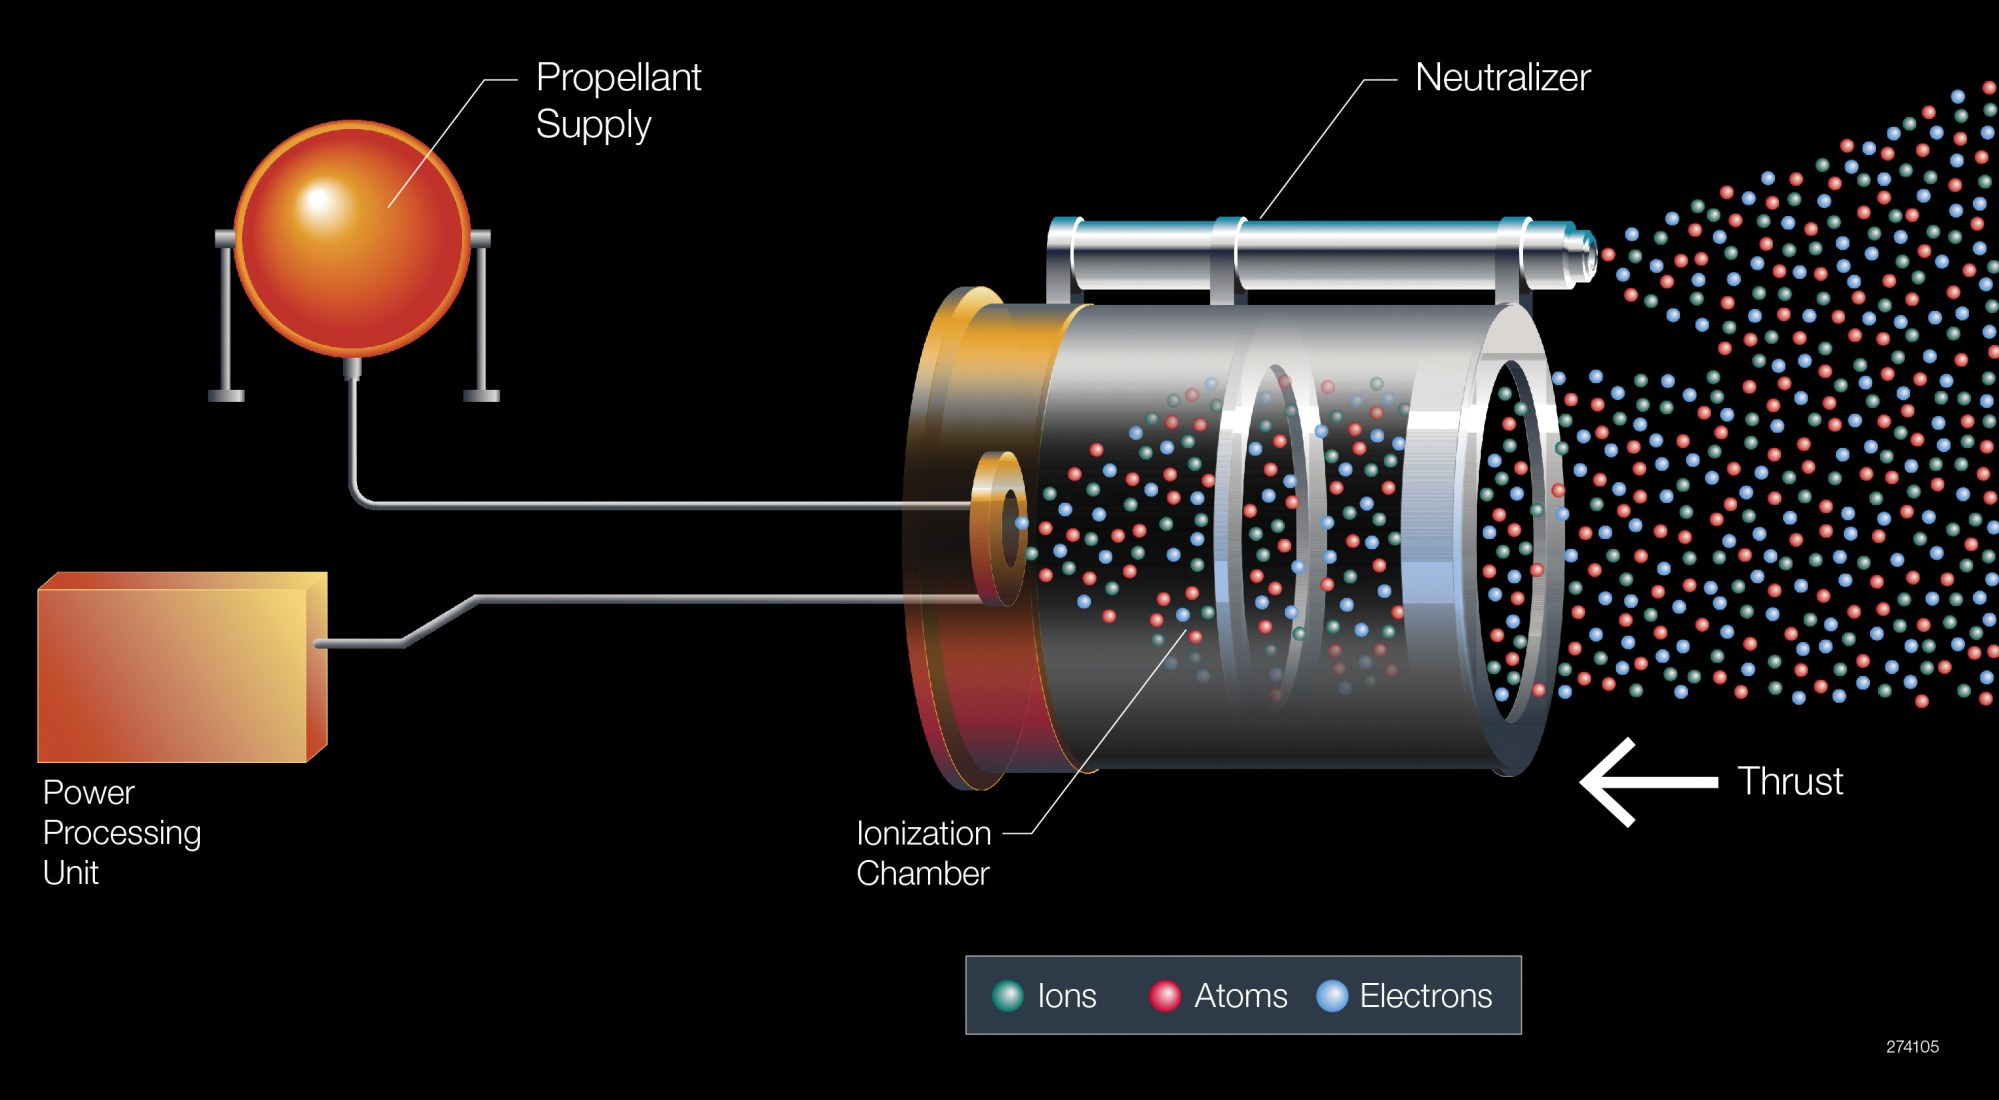 hight resolution of  diagram of the xenon propulsion system aboard the boeing built eutelsat 117 west b and